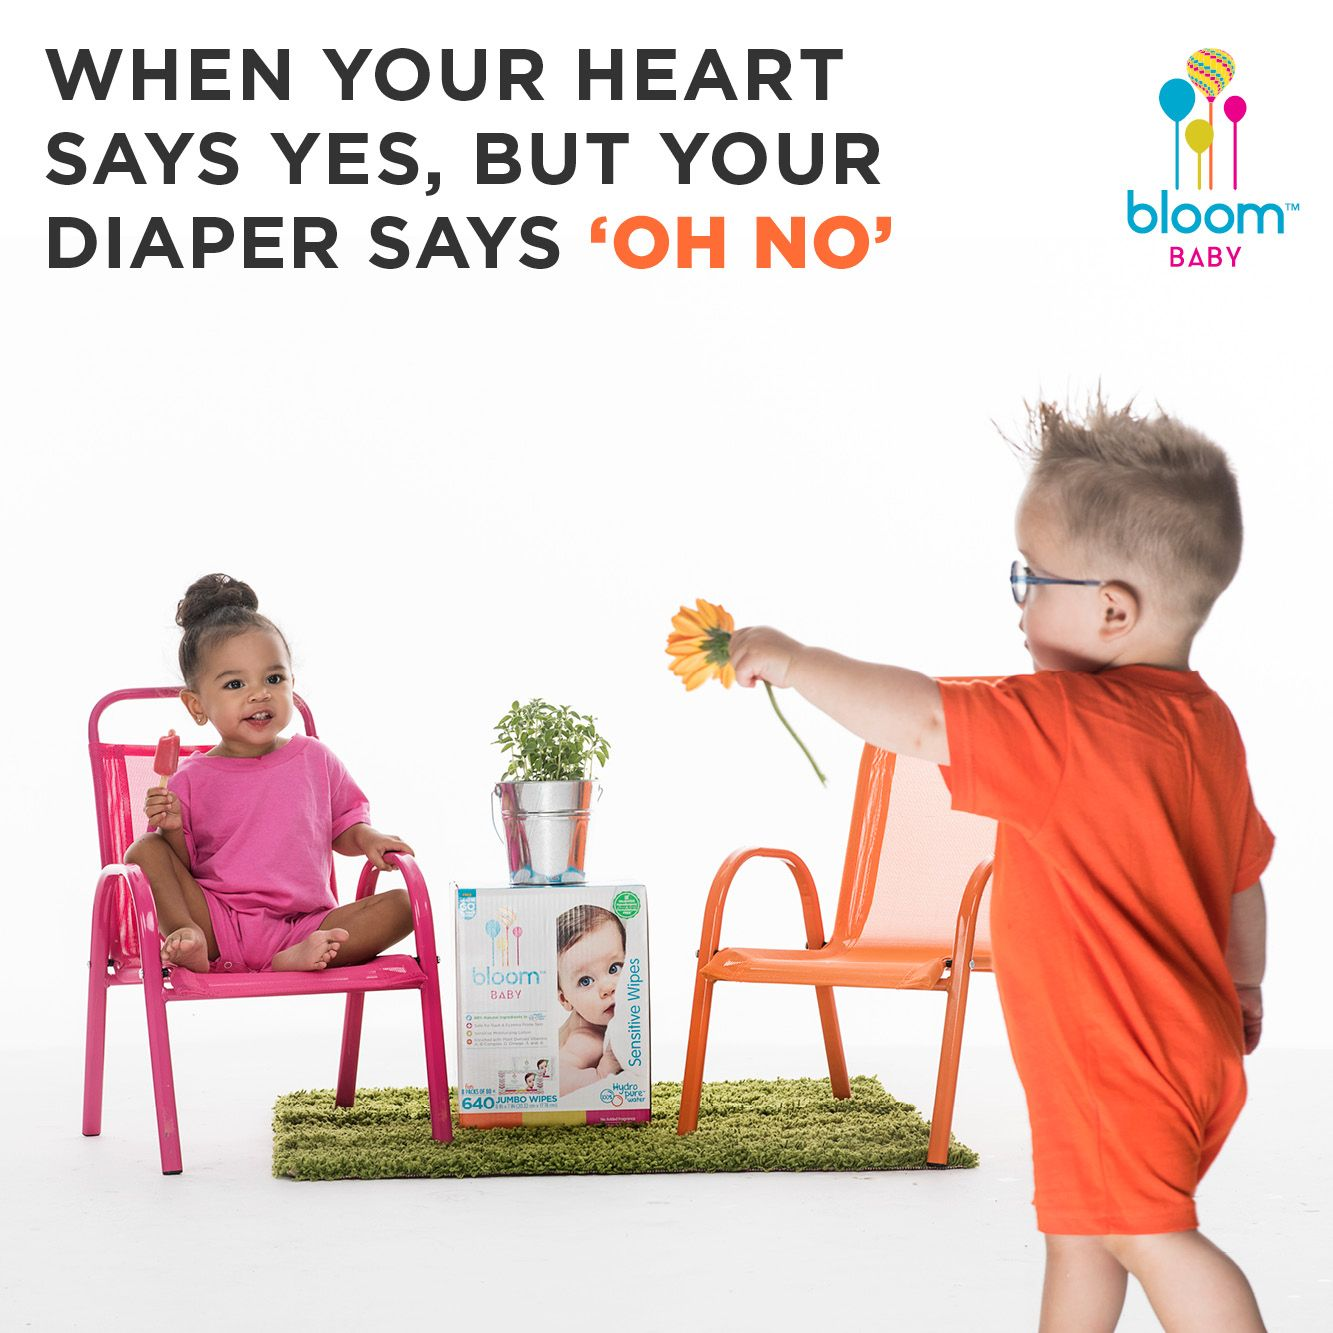 Don't kill the romance, stinky pants. Keep it fresh and clean with super-absorbent, natural, #PlantBased #bloomBaby wipes from #amazon. #NaturalBaby #BabyLove